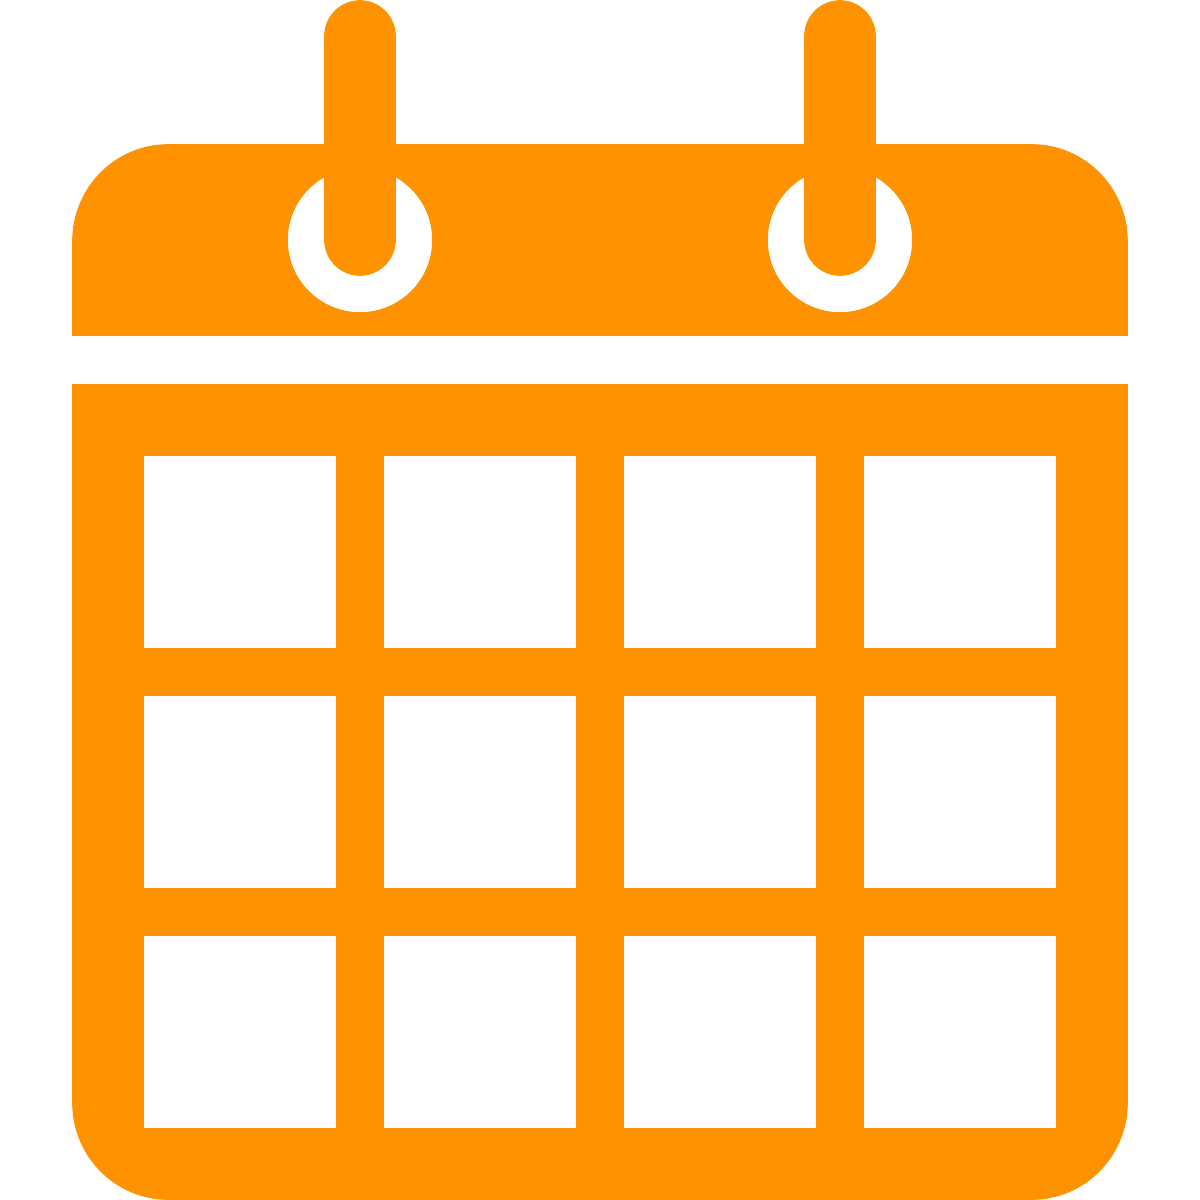 Schedule clipart training calendar. Course detail on site